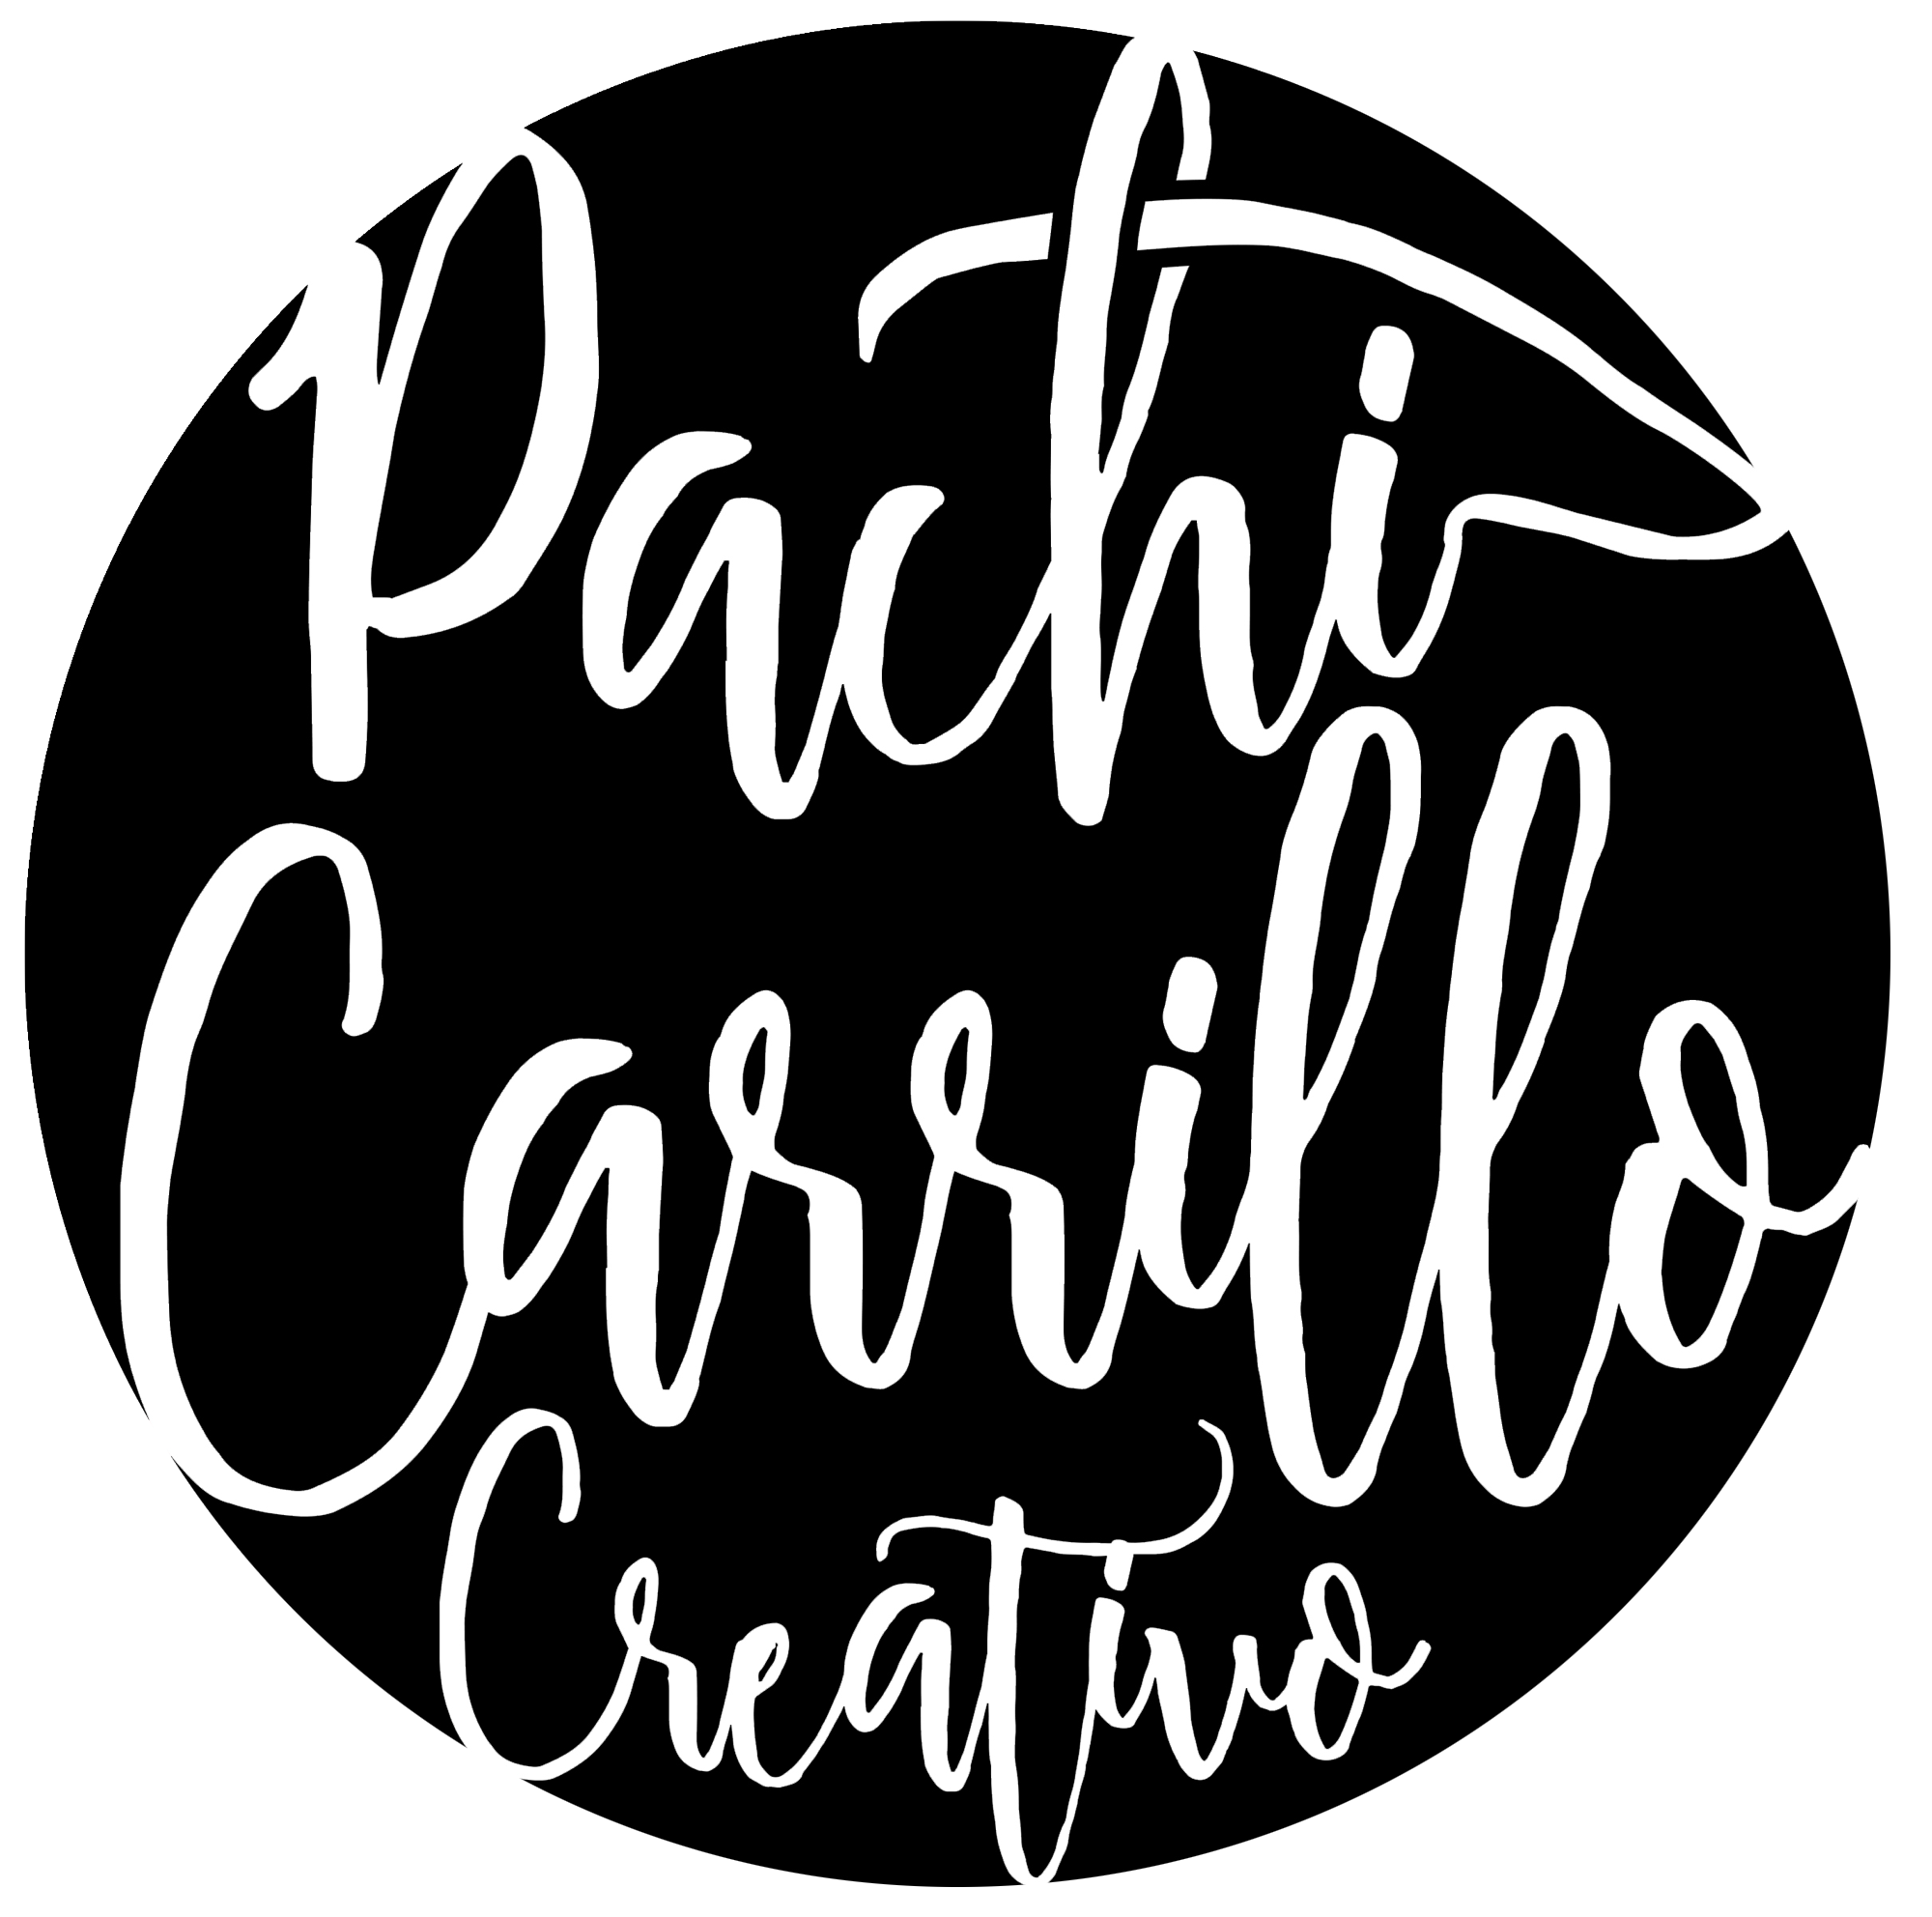 Pachi Carrillo Creativo